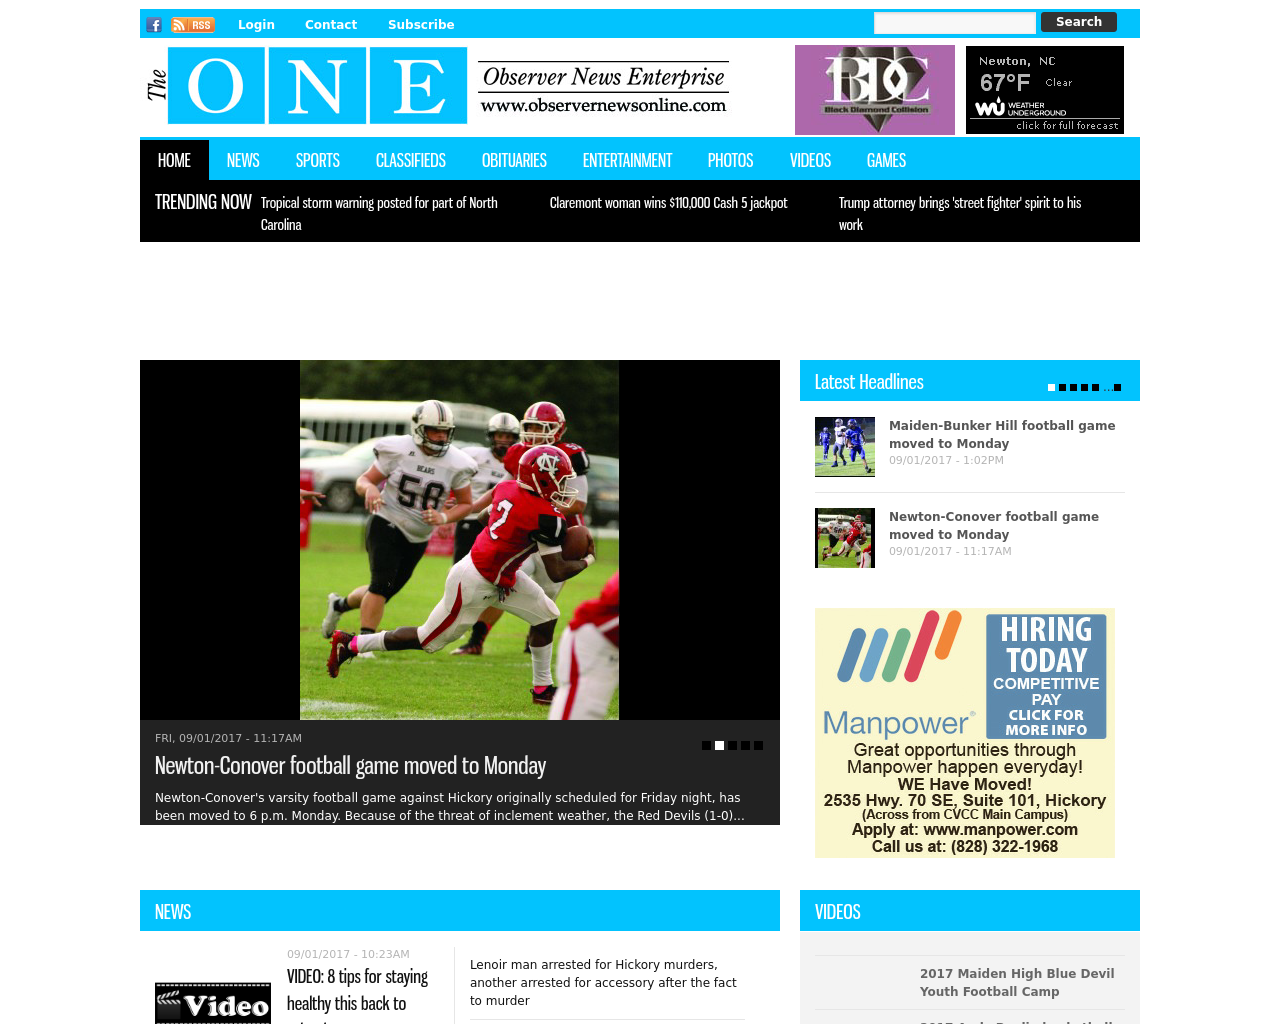 The-Observer-News-Enterprise-Advertising-Reviews-Pricing